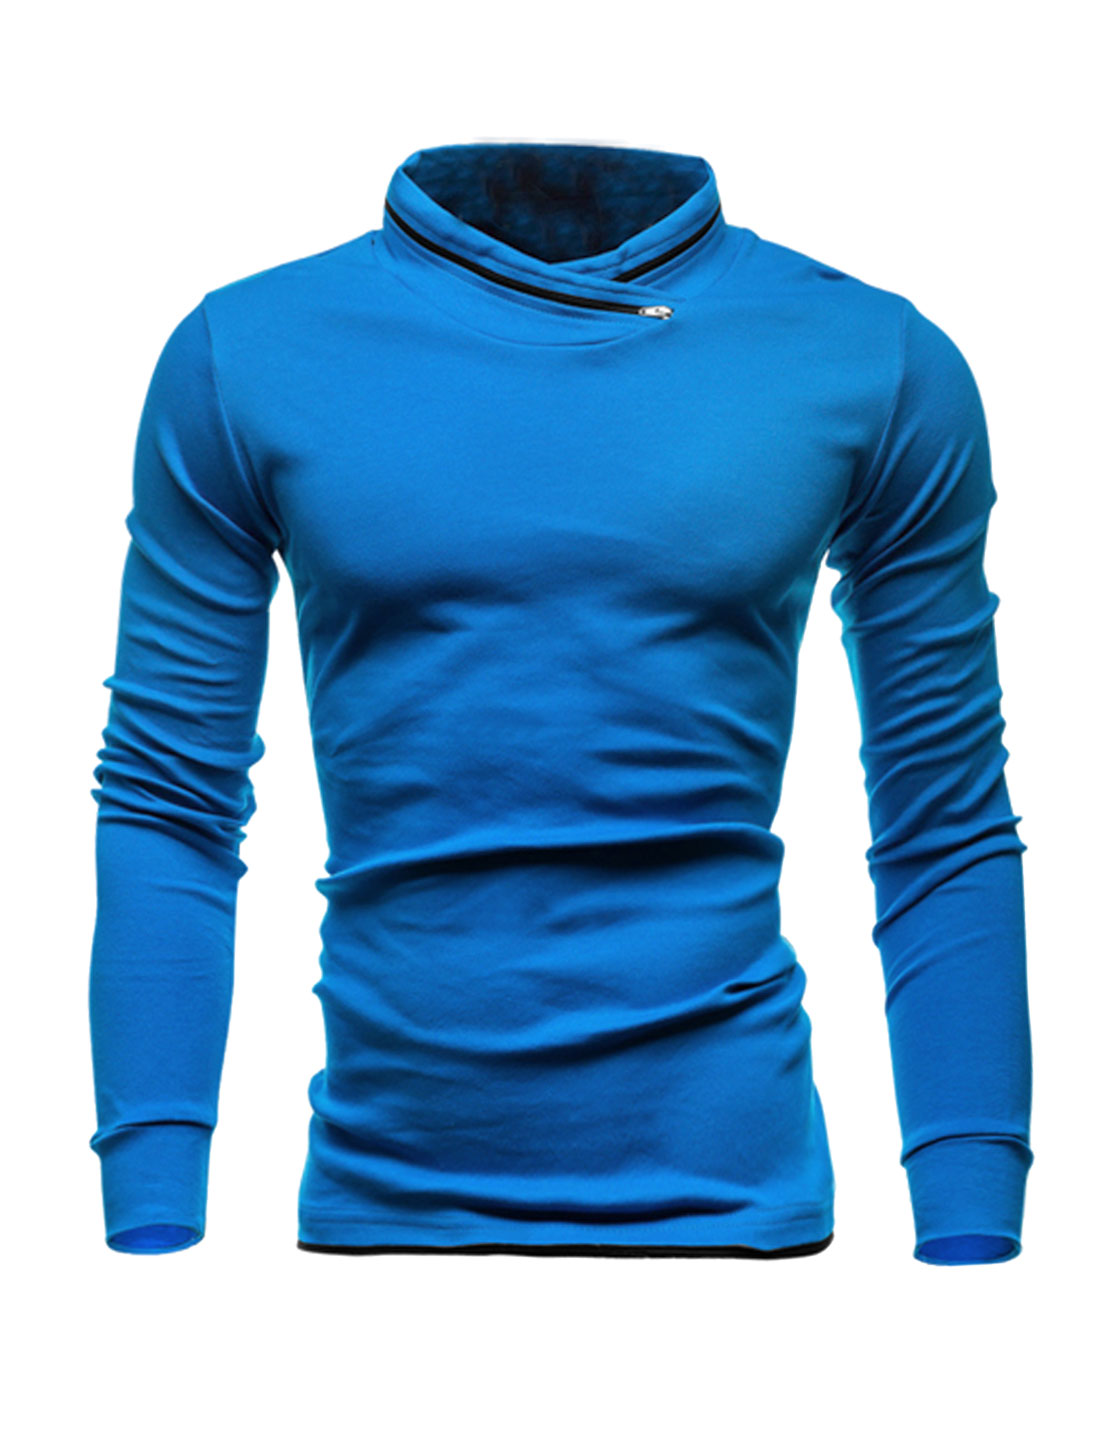 Men Zip Decor Stand Collar Long Sleeves Slim Fit T-Shirt Blue M